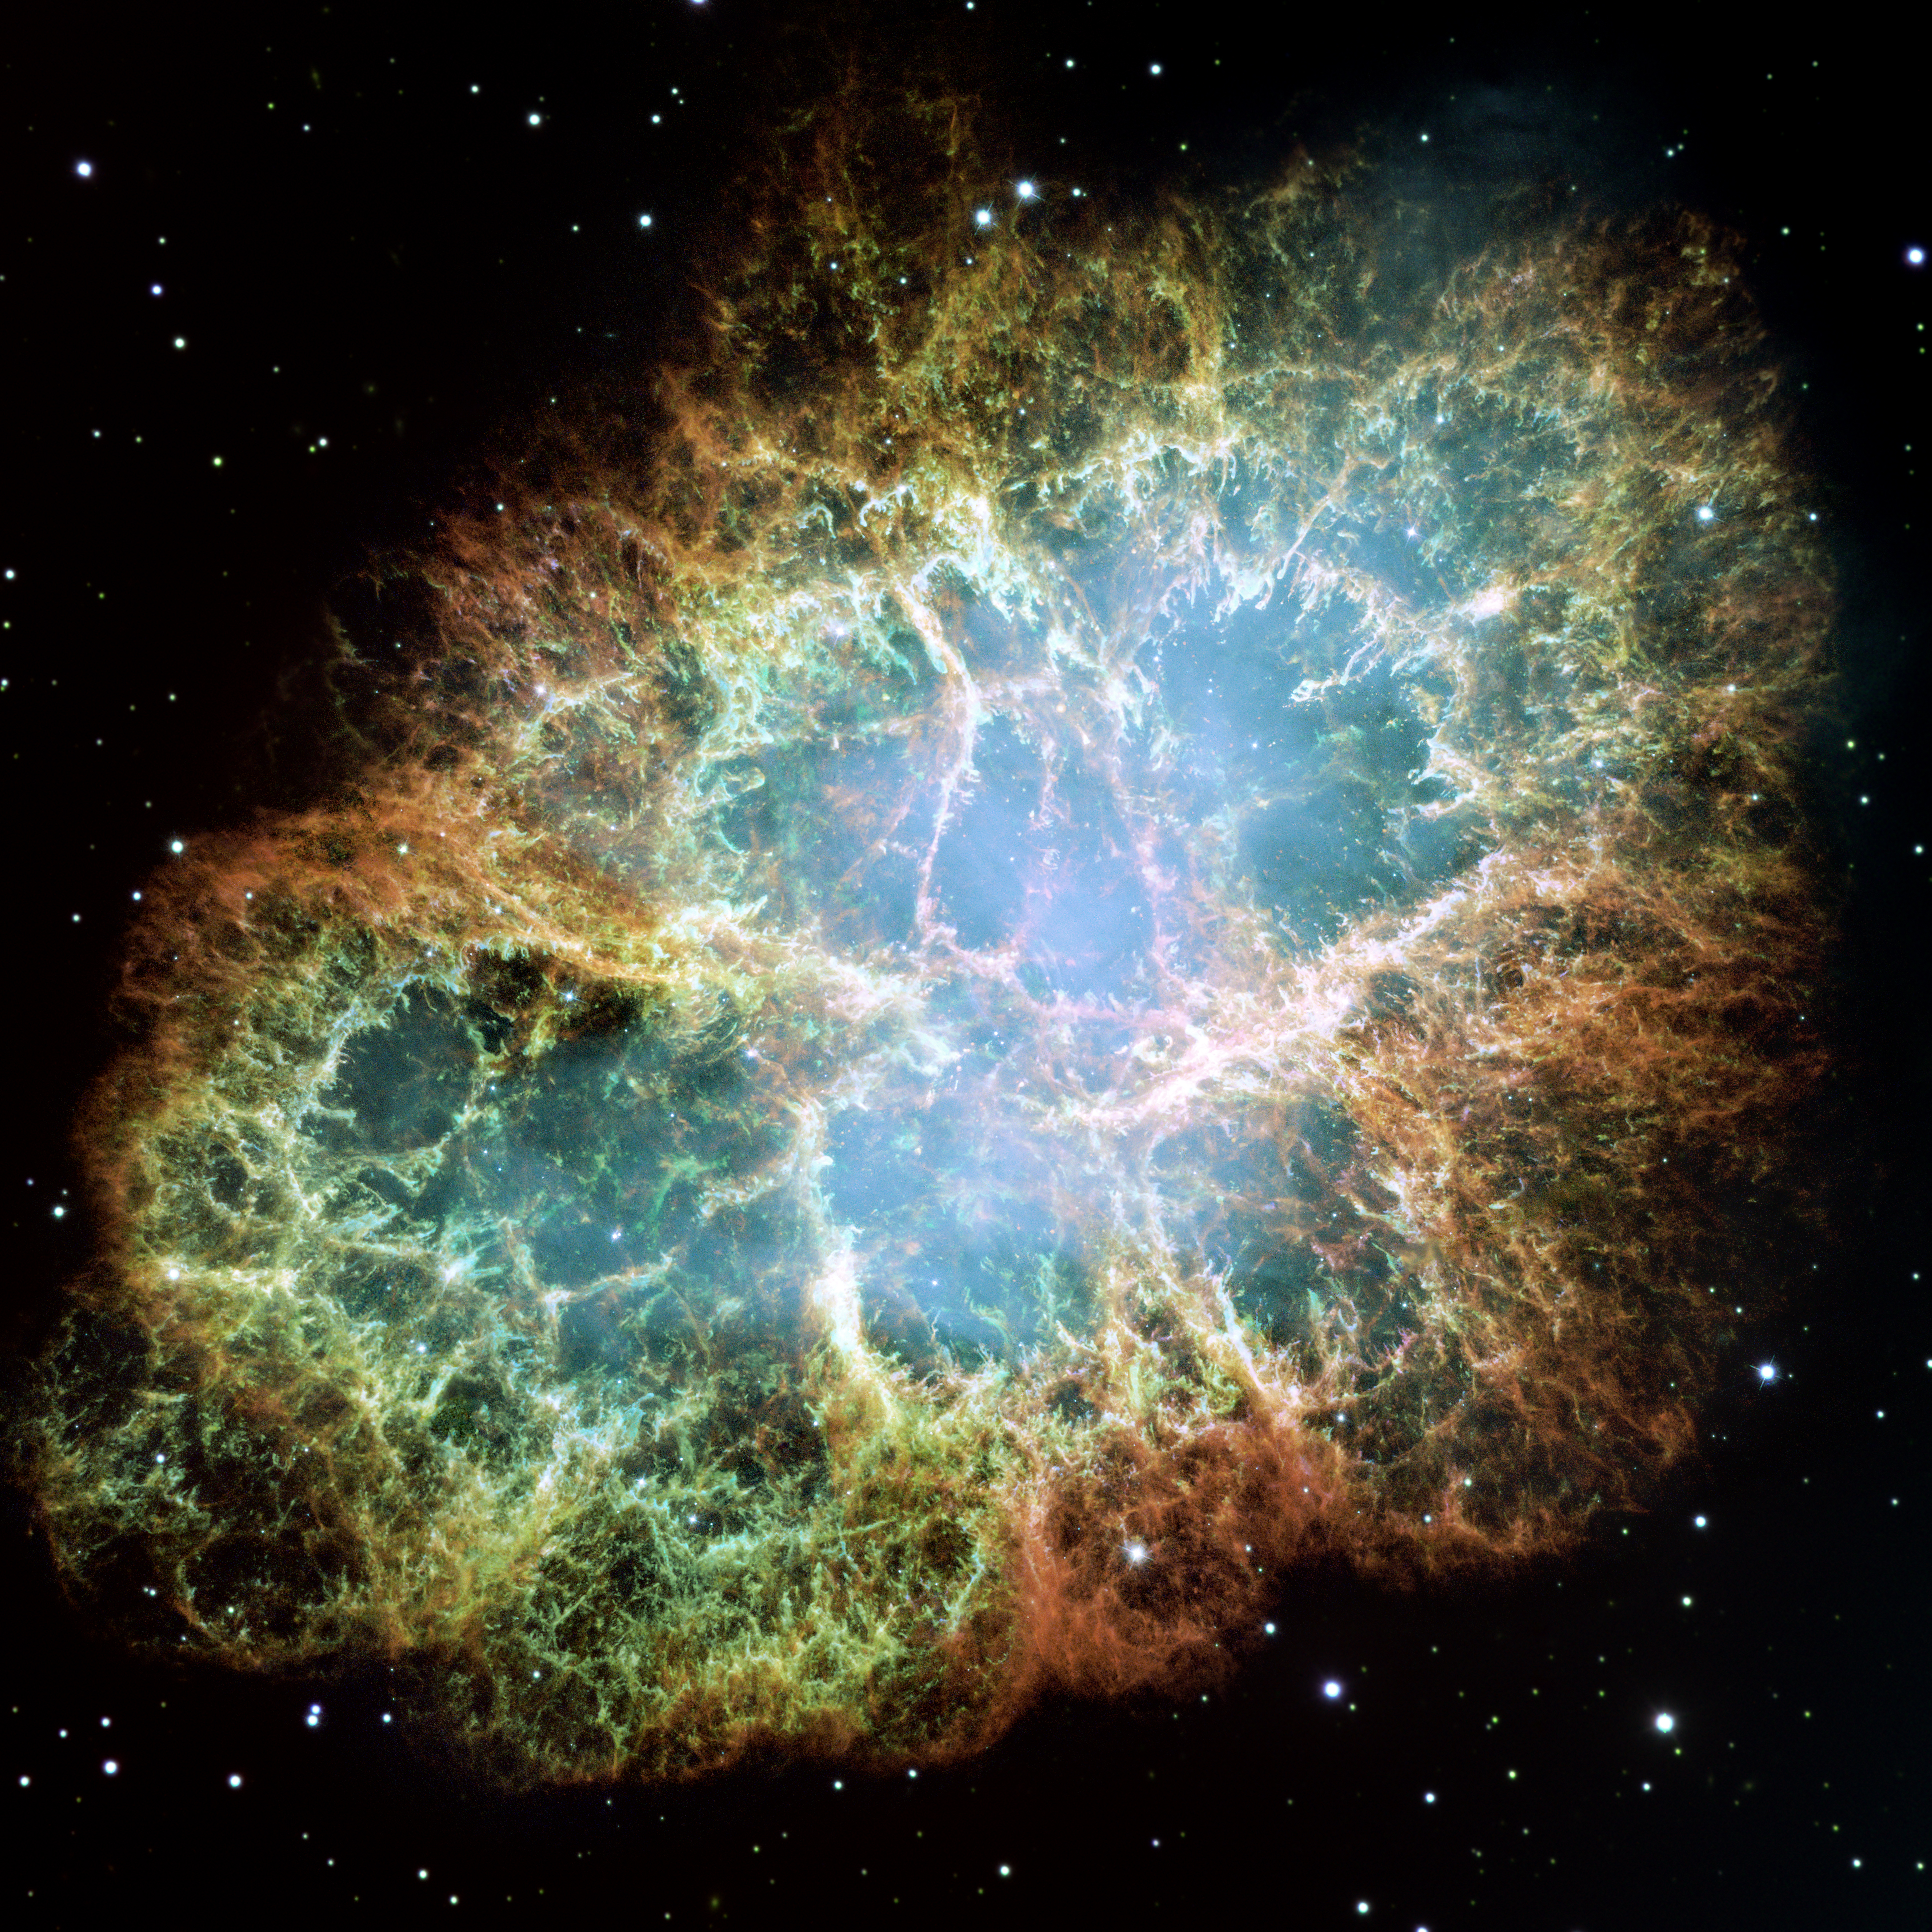 http://upload.wikimedia.org/wikipedia/commons/0/00/Crab_Nebula.jpg